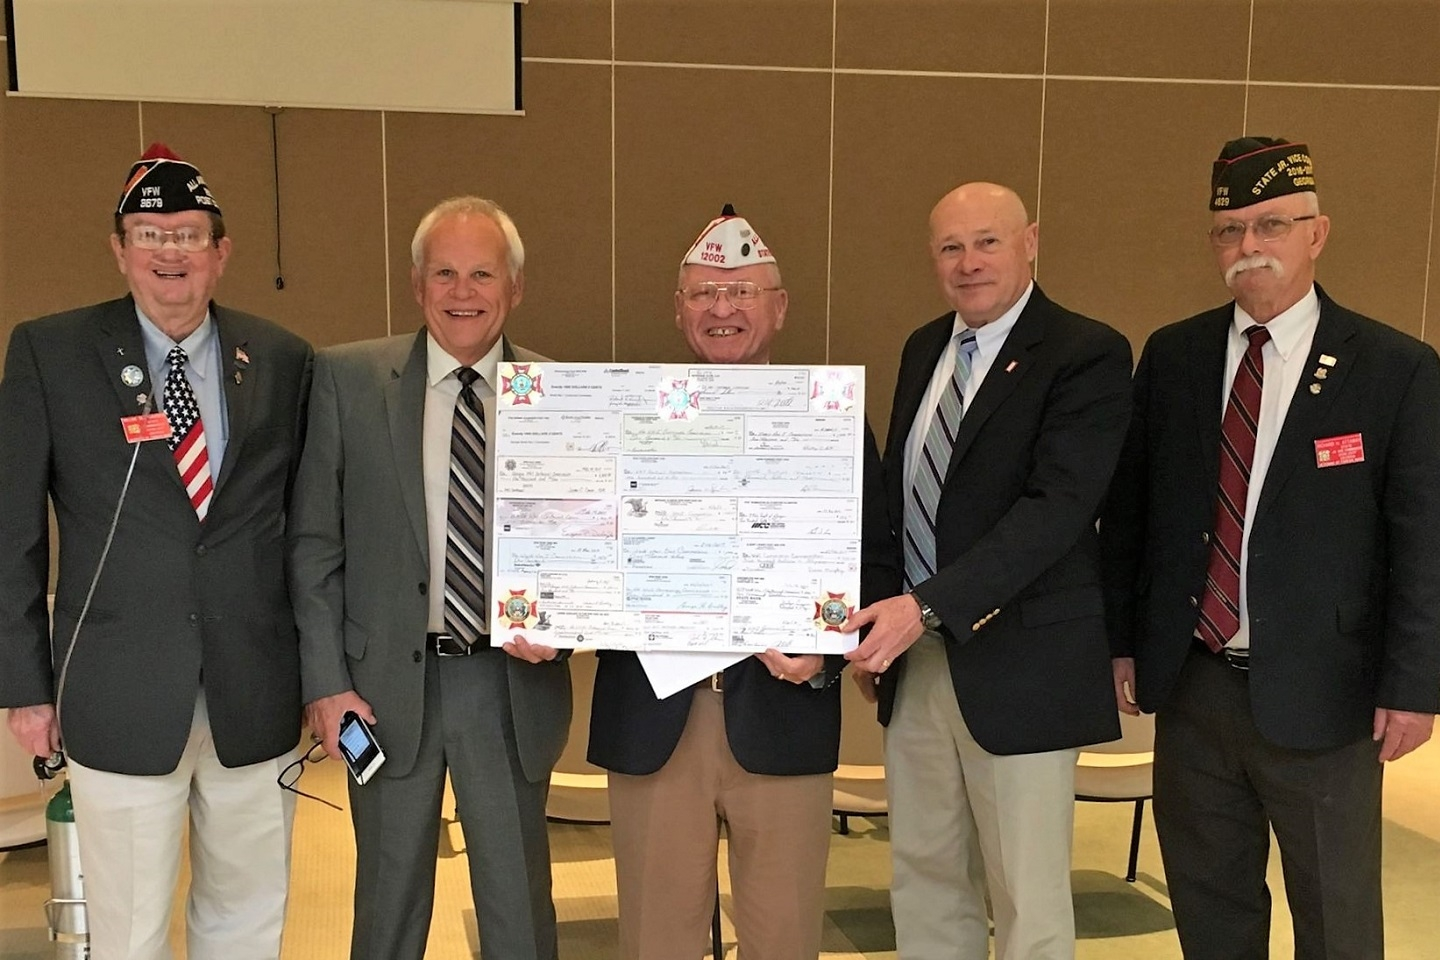 March 23, 2017 - (L-R) VFW State Commander Bill Sandberg, Commission and VFW member Rick Elder, Past GA VFW Commander Al Lipphardt, (identify), VFW State Jr Vice Commander Richard Attaway.